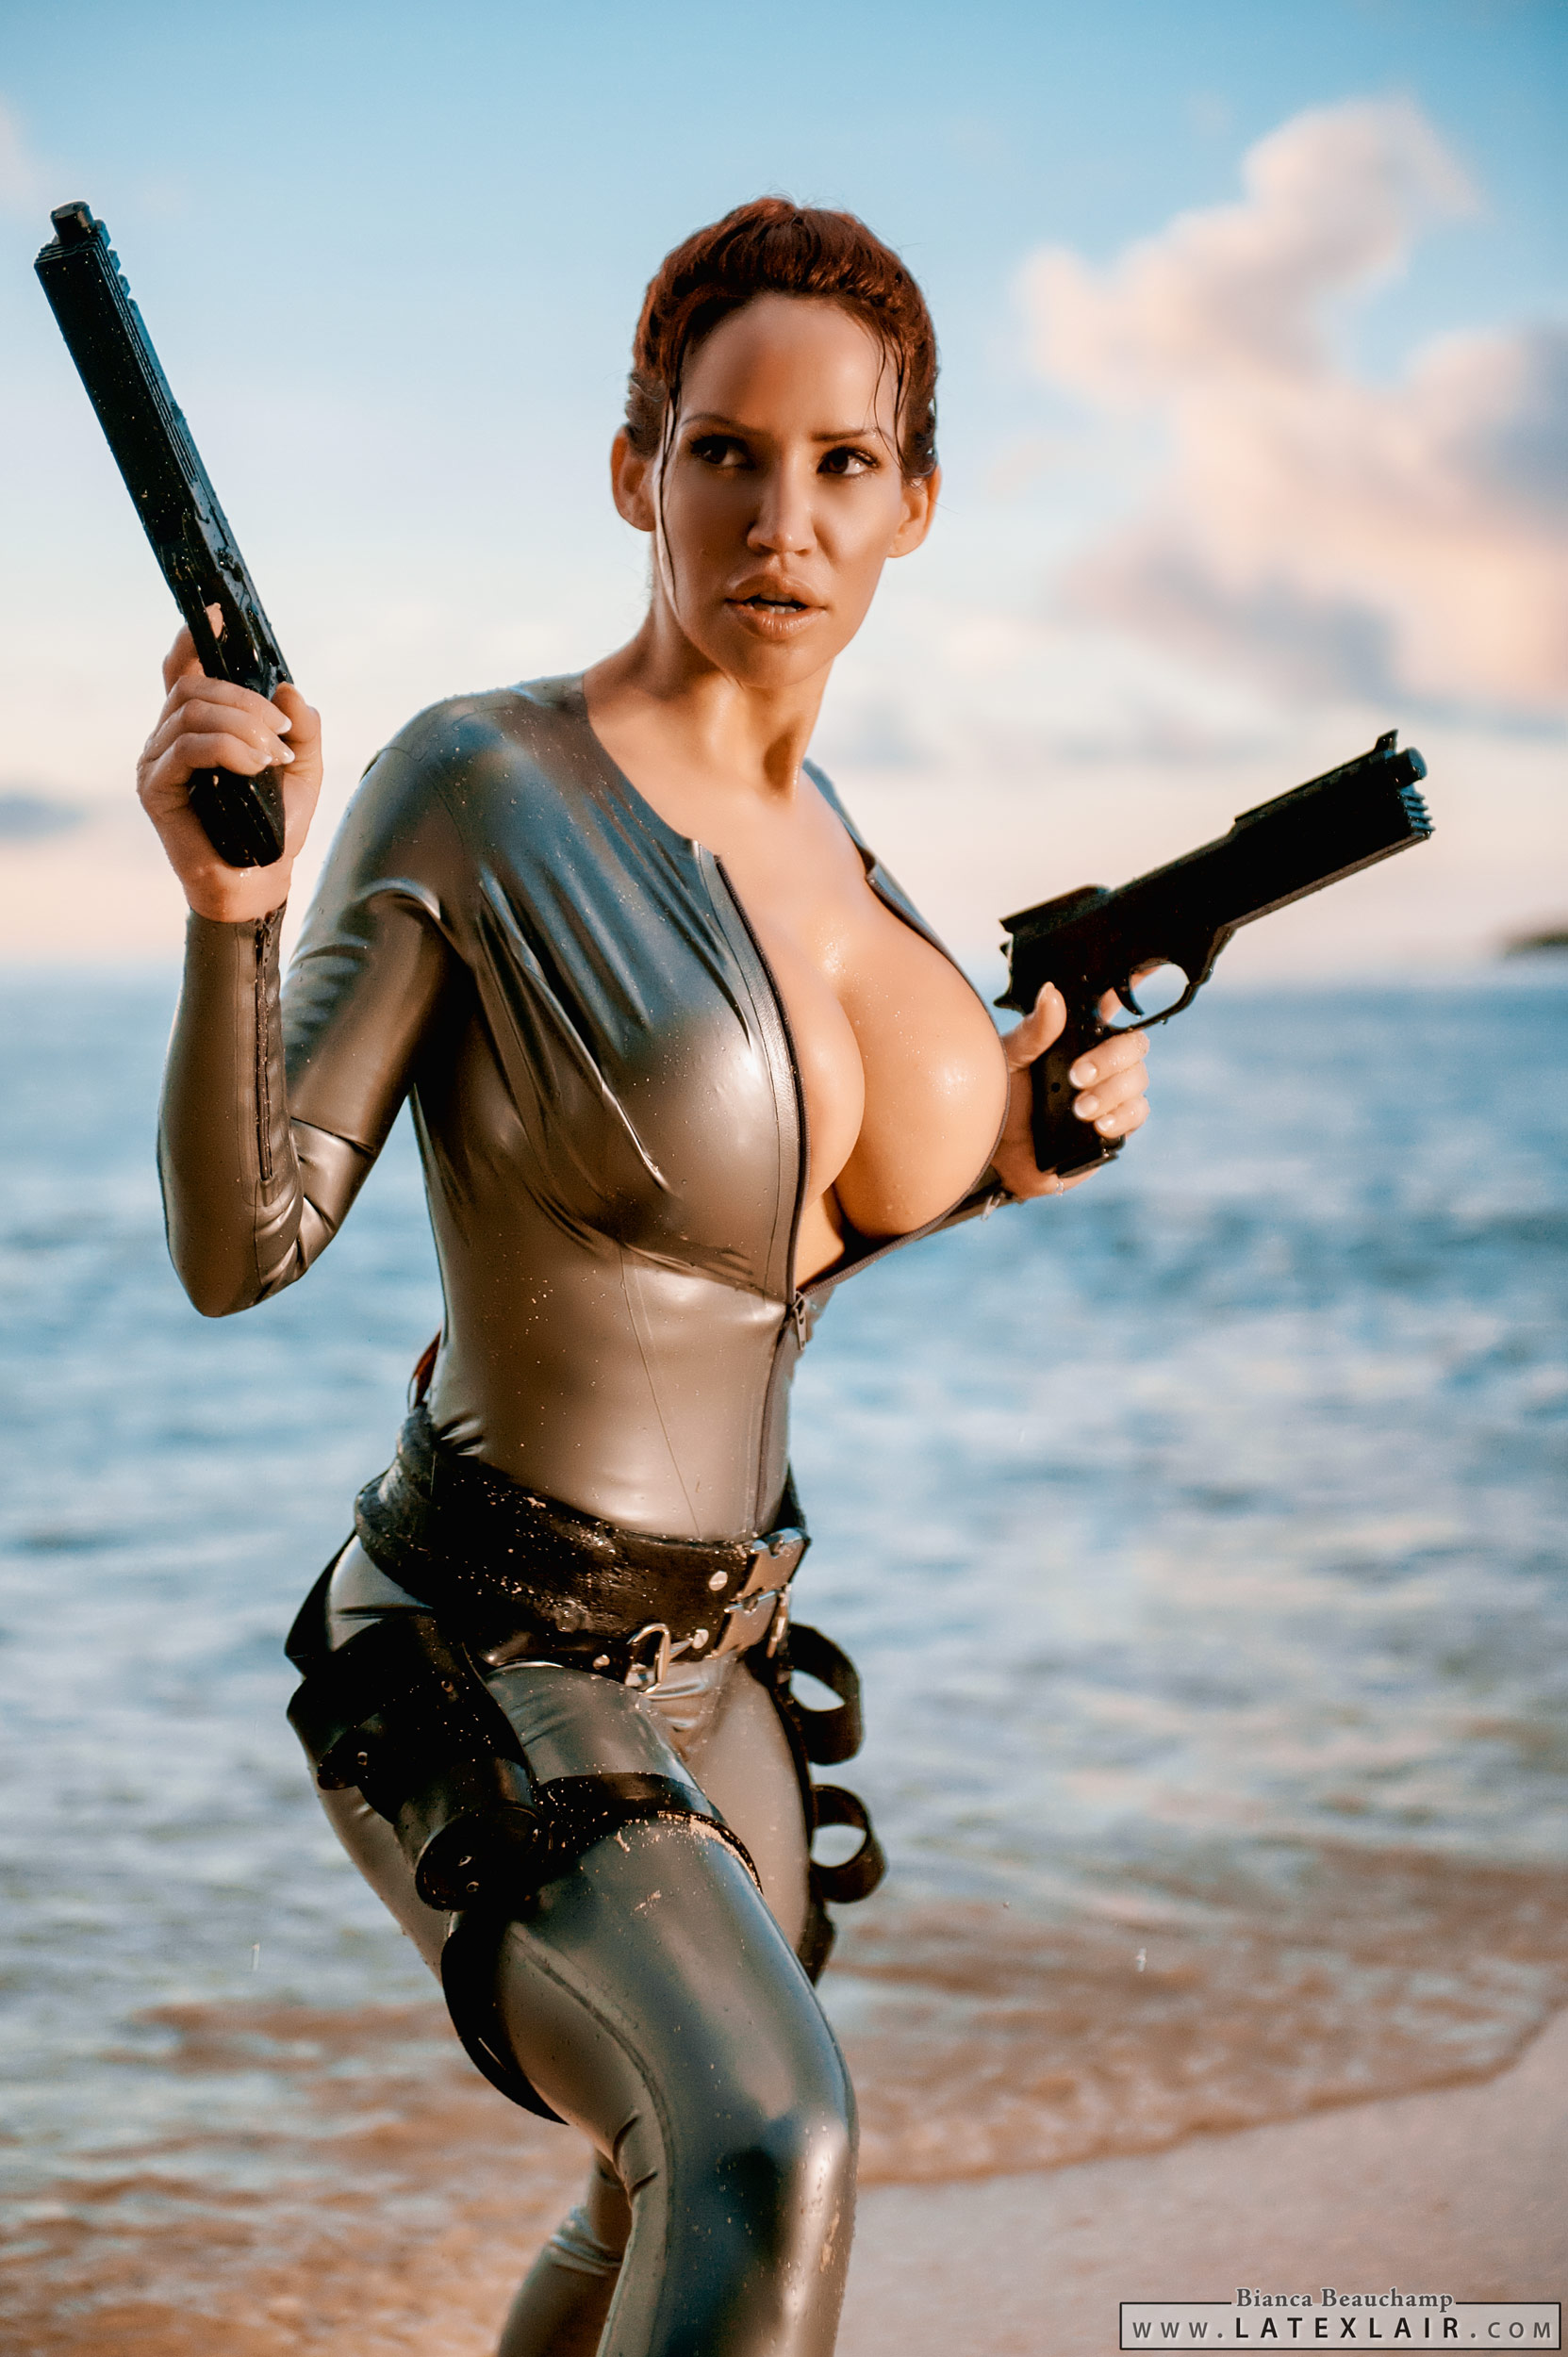 Hot tomb raider boobs adult photo